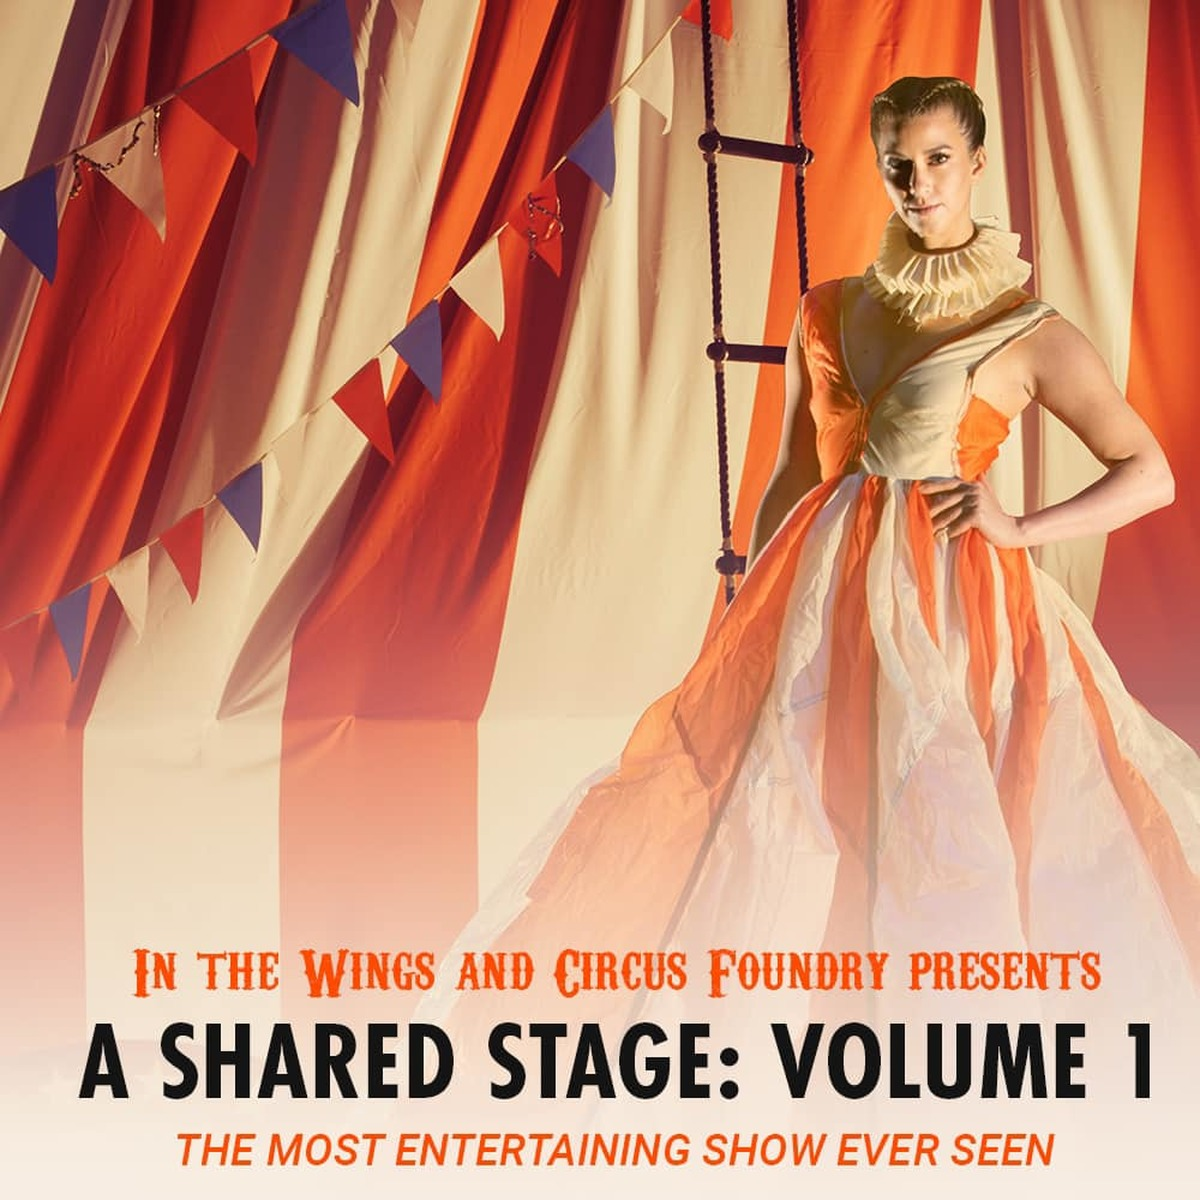 In the Wings and Circus Foundry presents a Shared Stage Volume 1